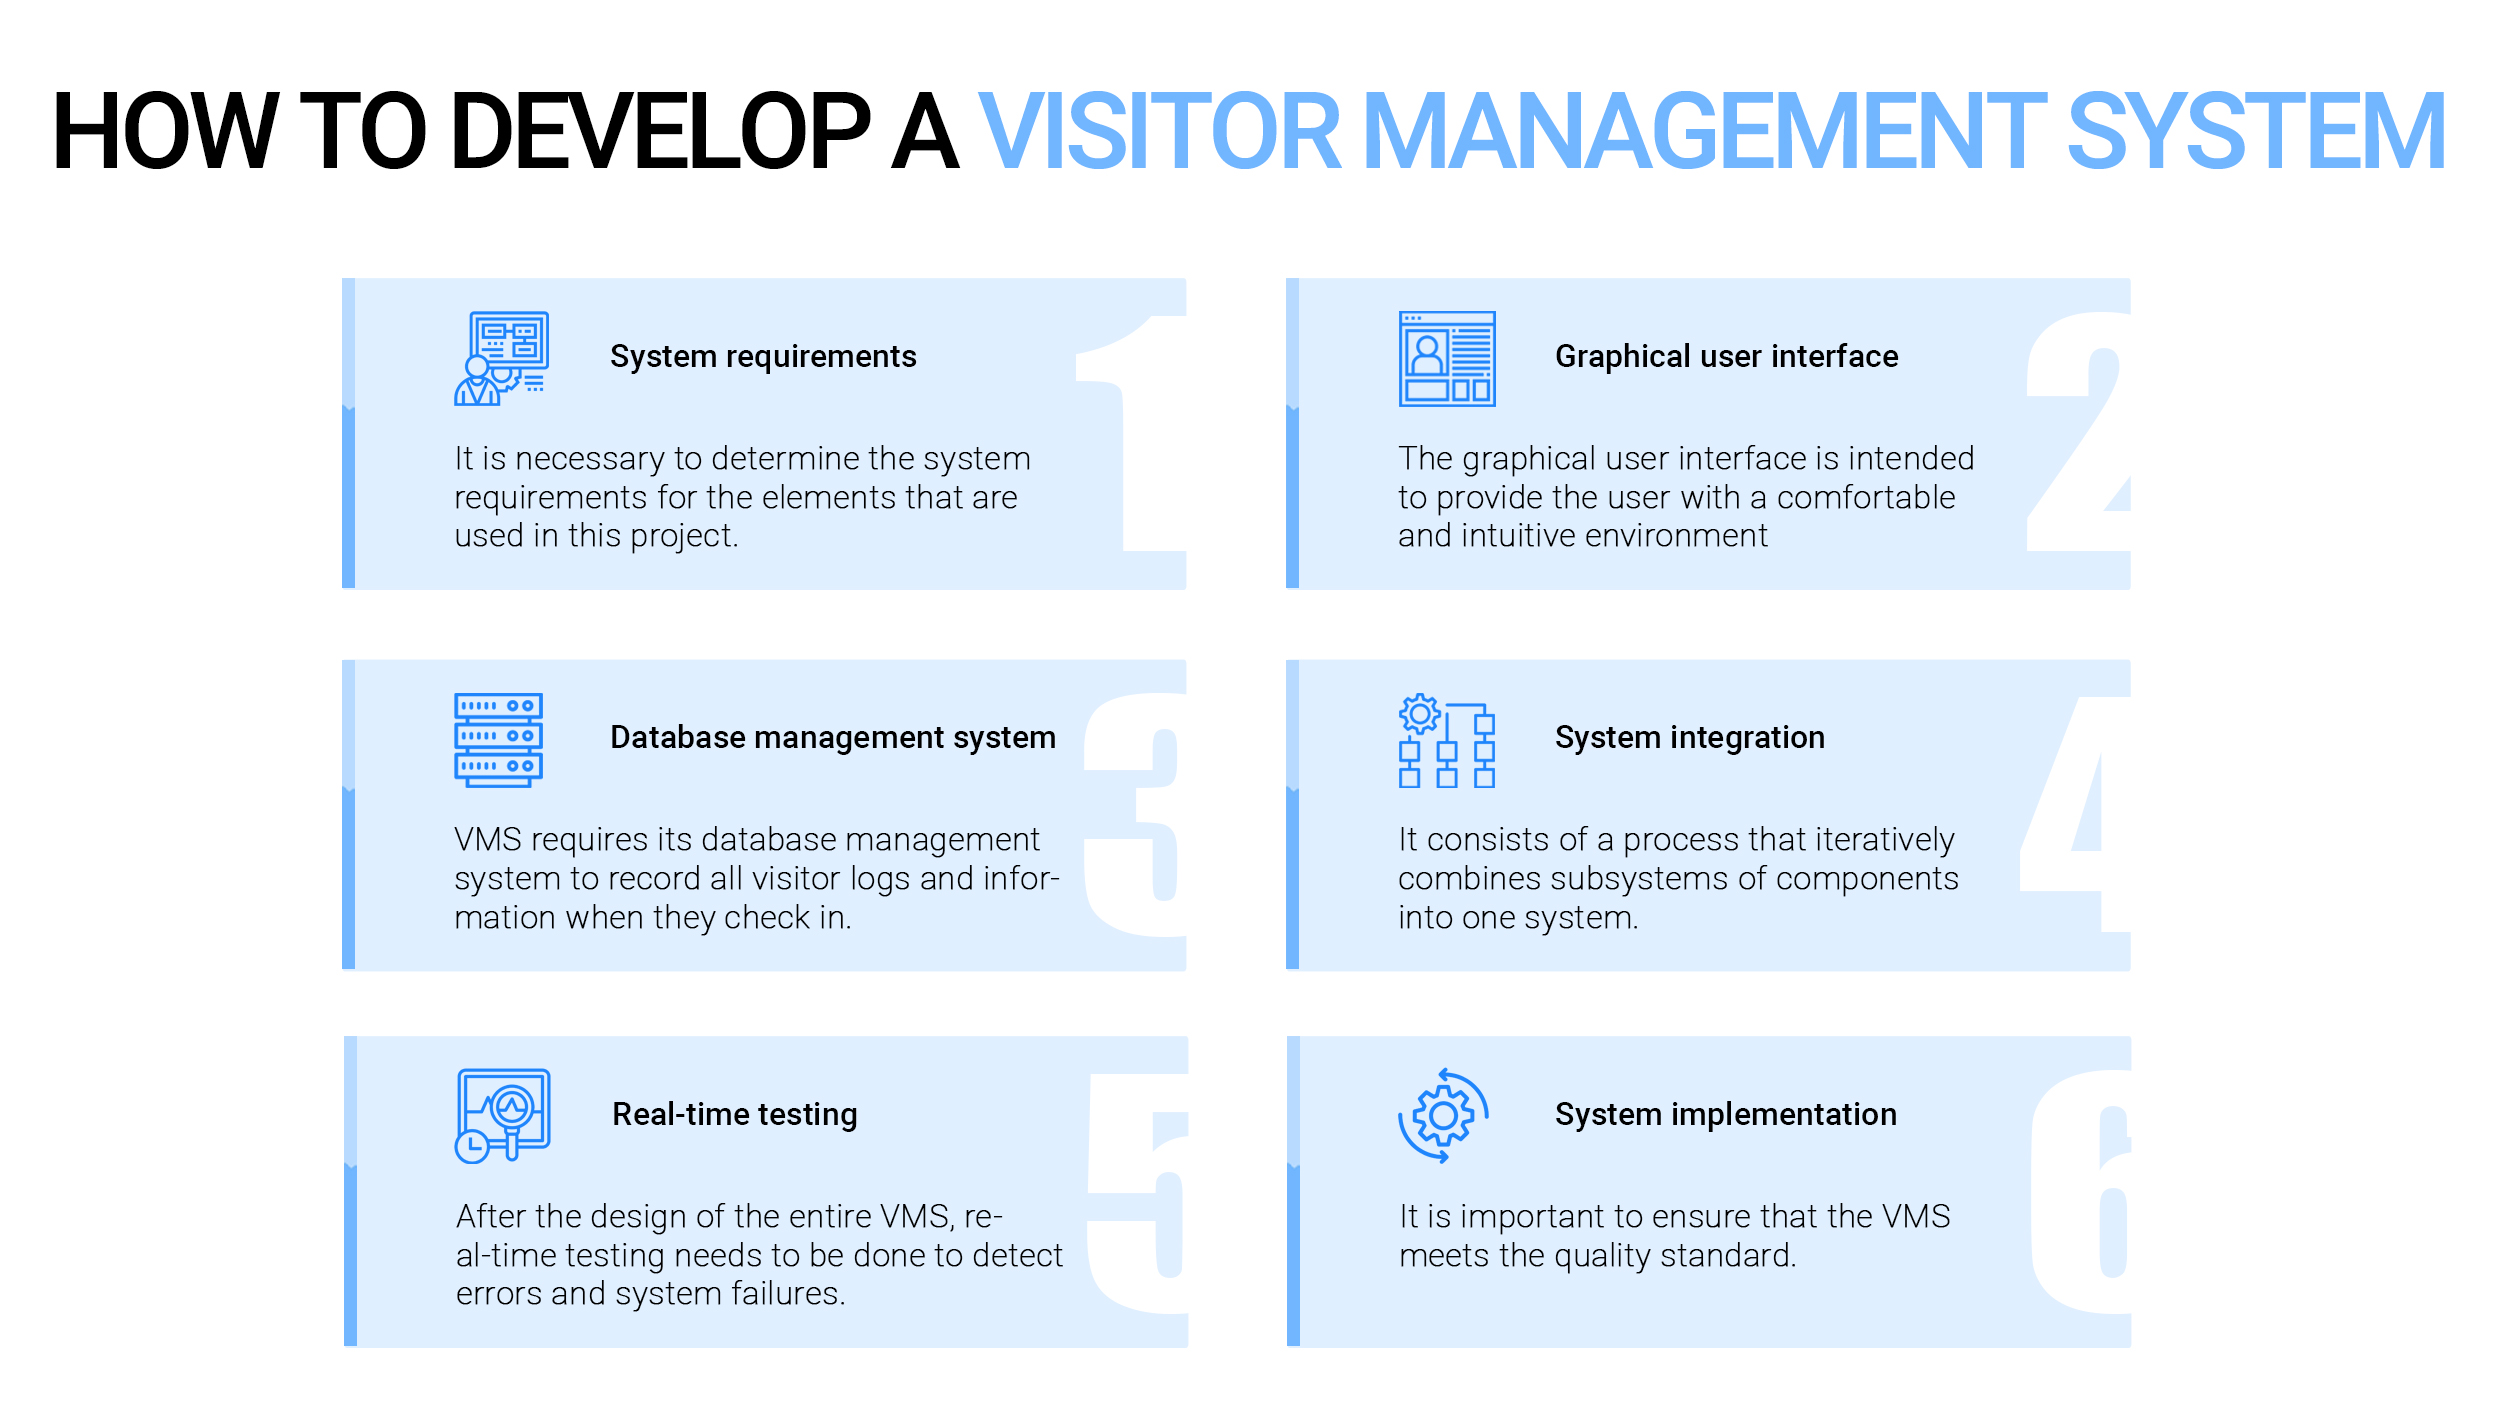 How to develop a visitor management system